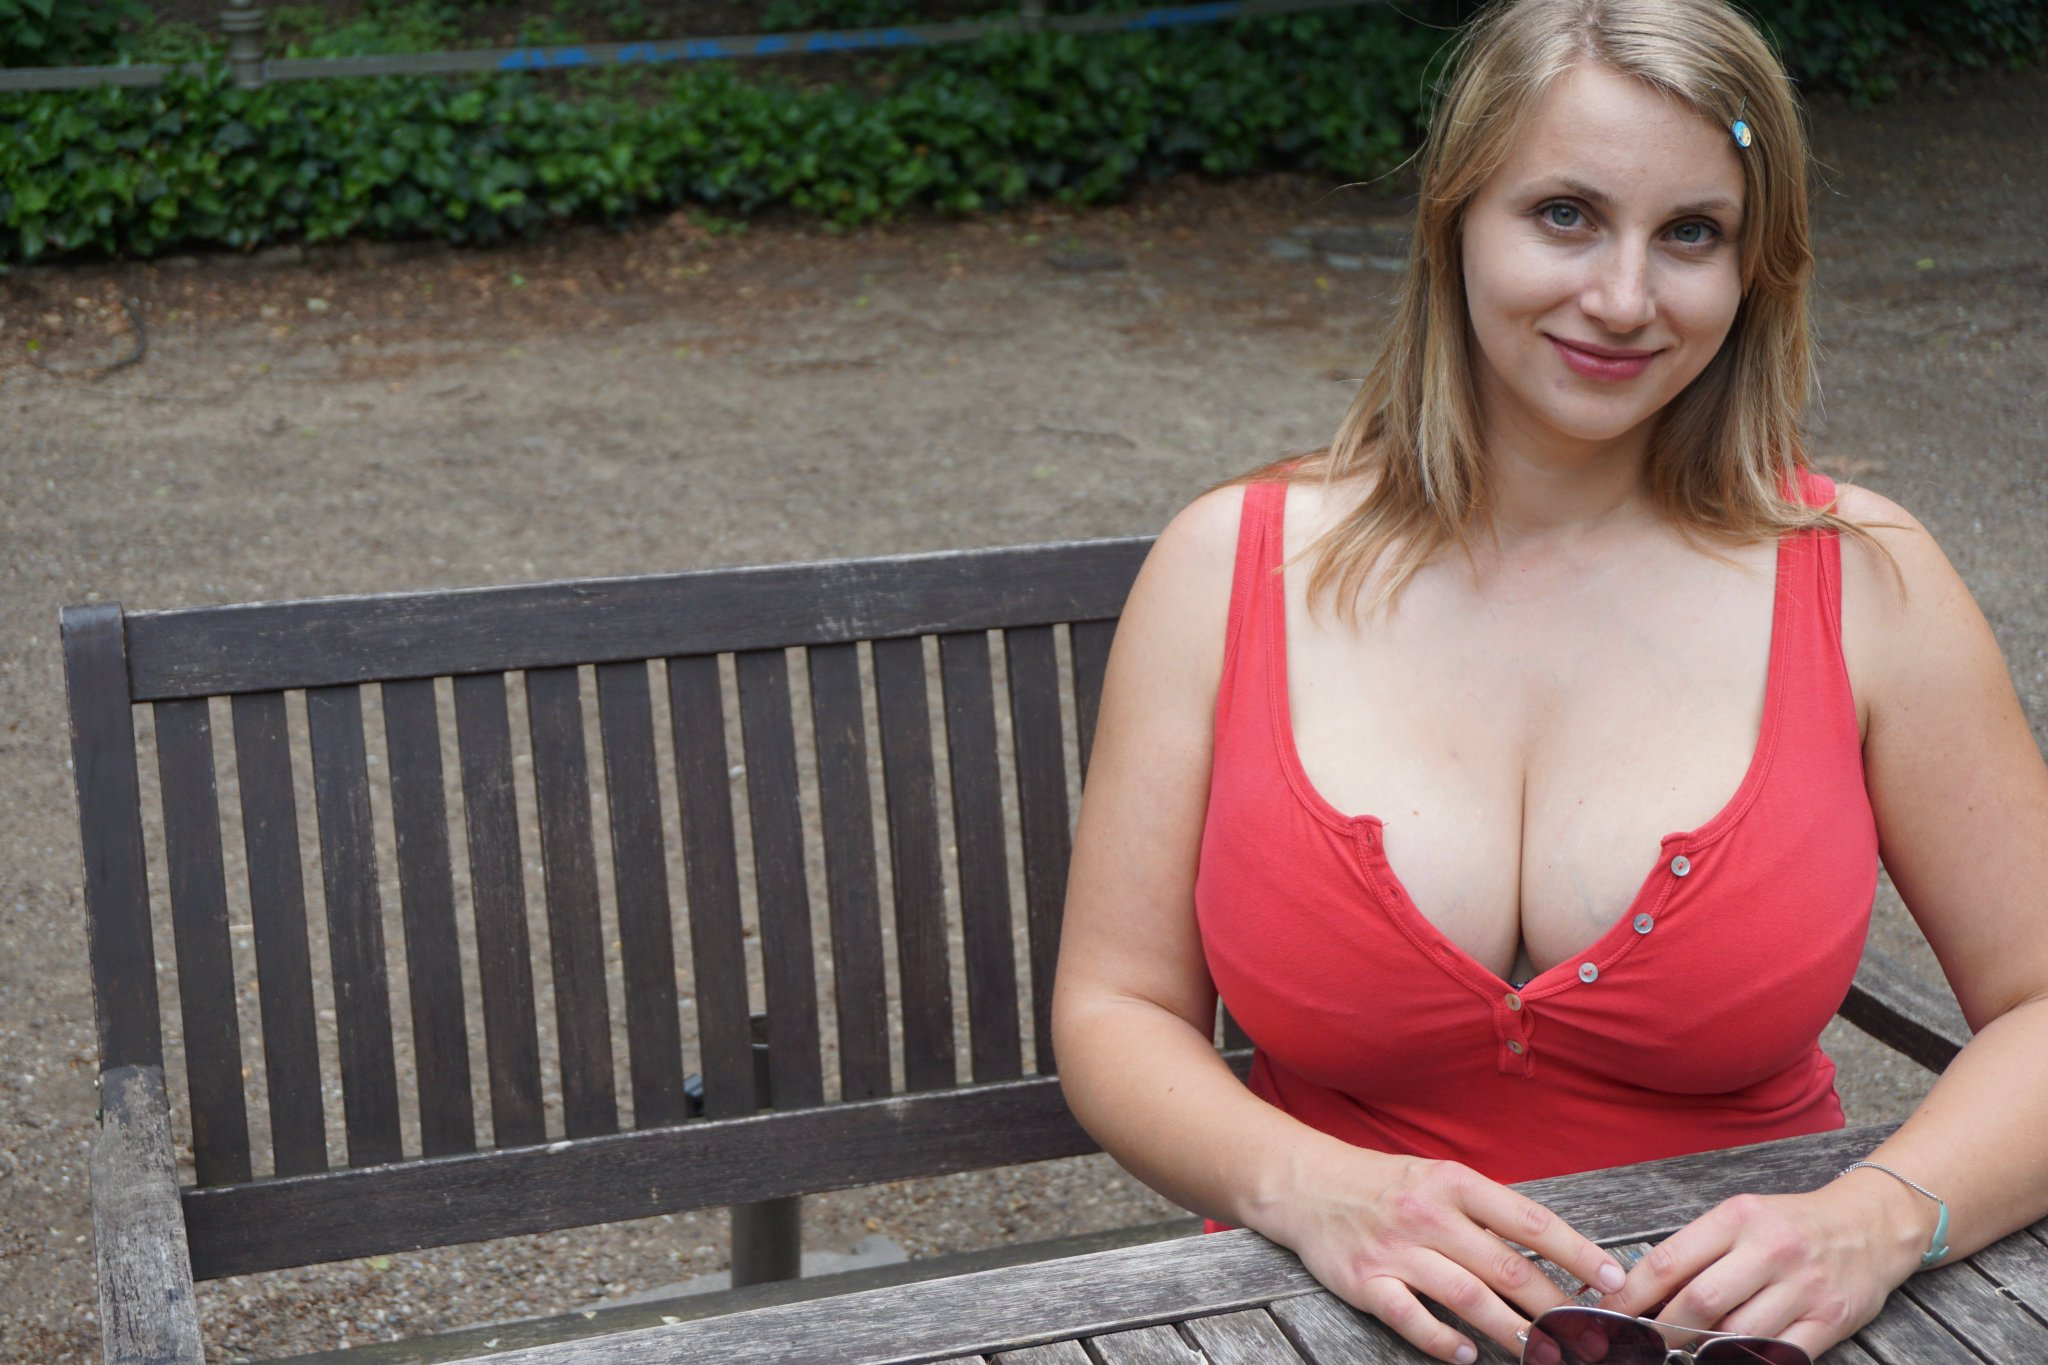 Curvy Berlin on Twitter: Nadja is photographed for the